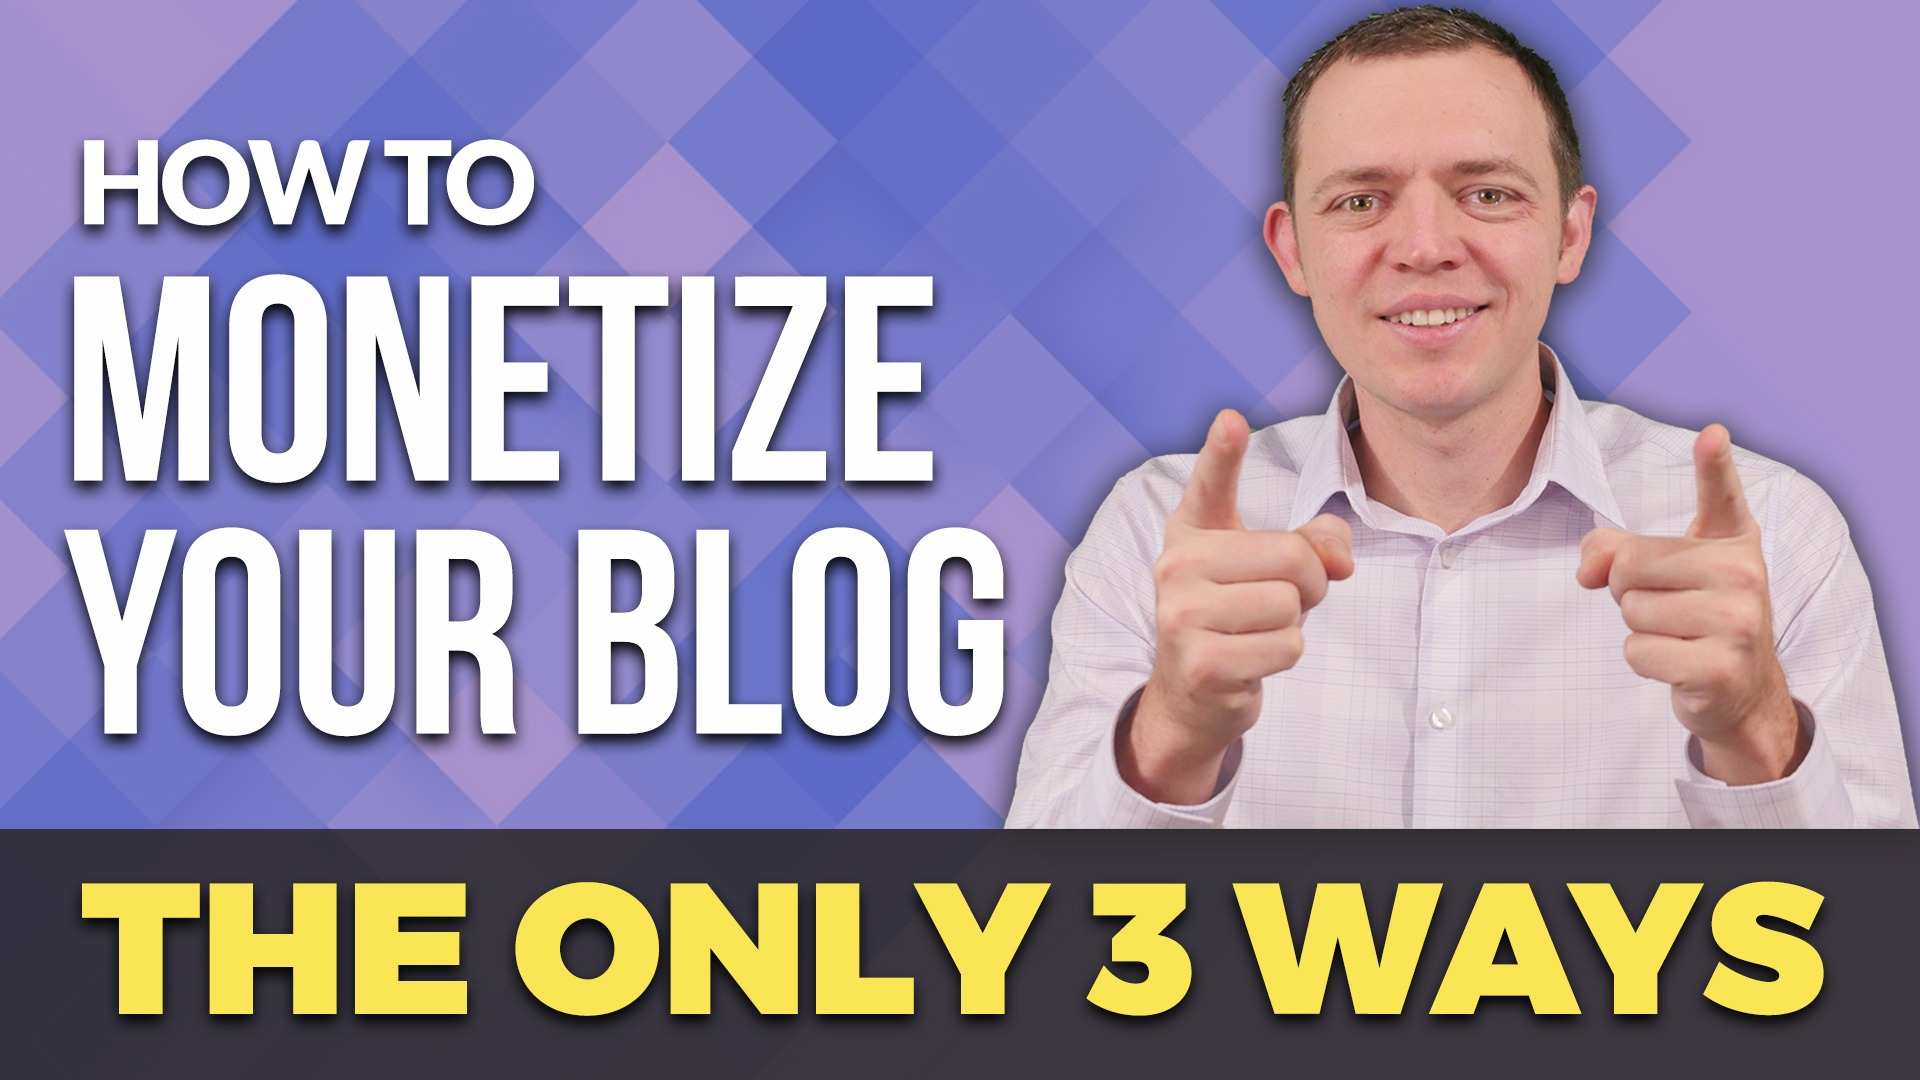 The ONLY 3 Ways to Monetize Your Blog!